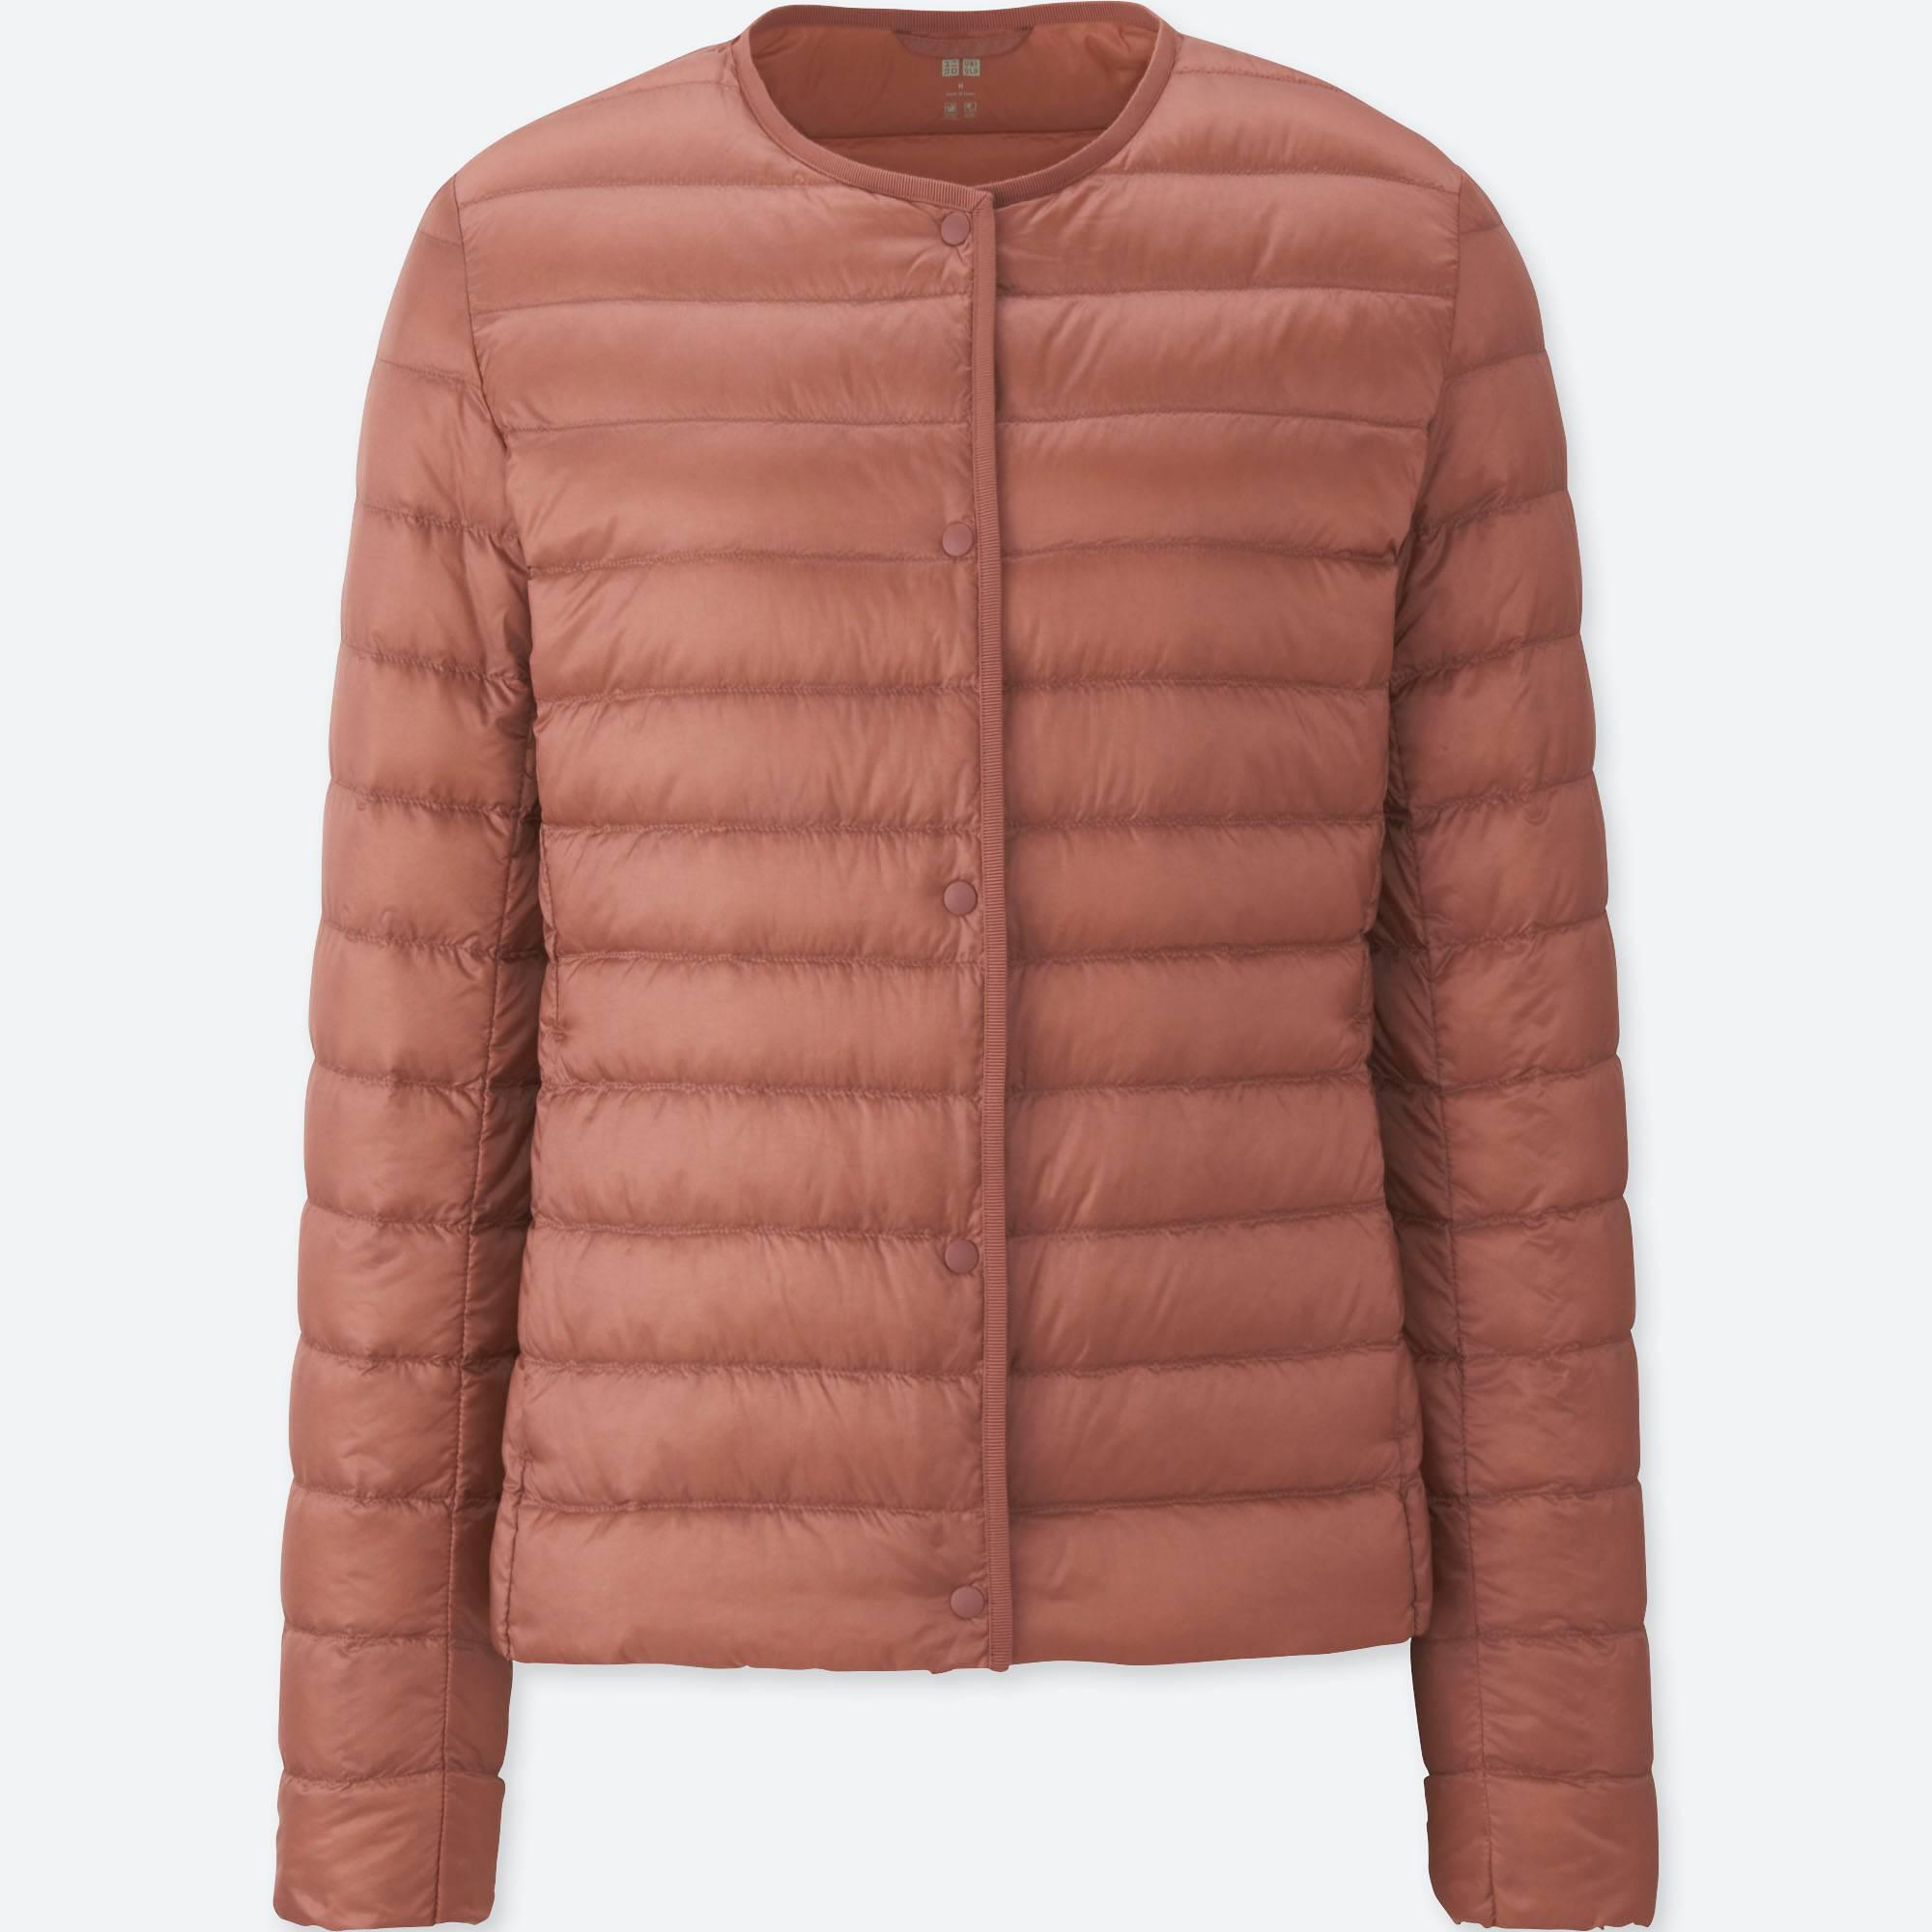 lyst uniqlo women ultra light down compact jacket in pink. Black Bedroom Furniture Sets. Home Design Ideas